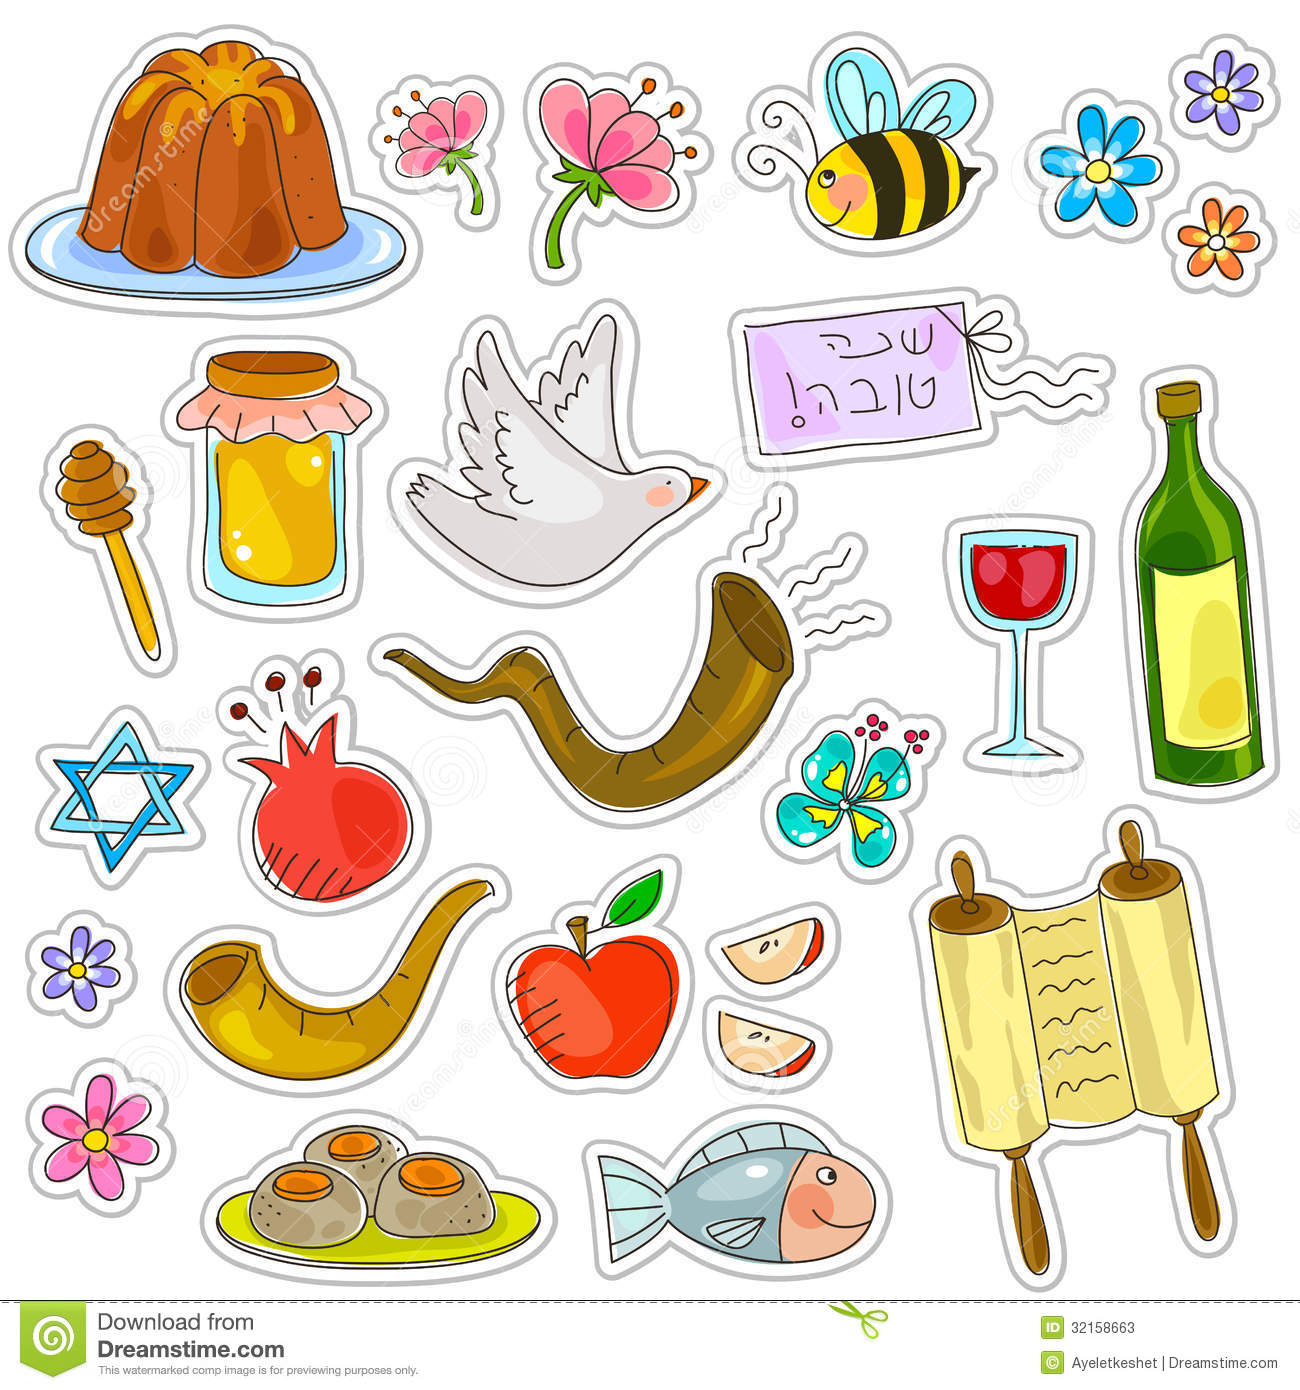 Rosh Hashanah Symbols Stock Vector Illustration Of Card